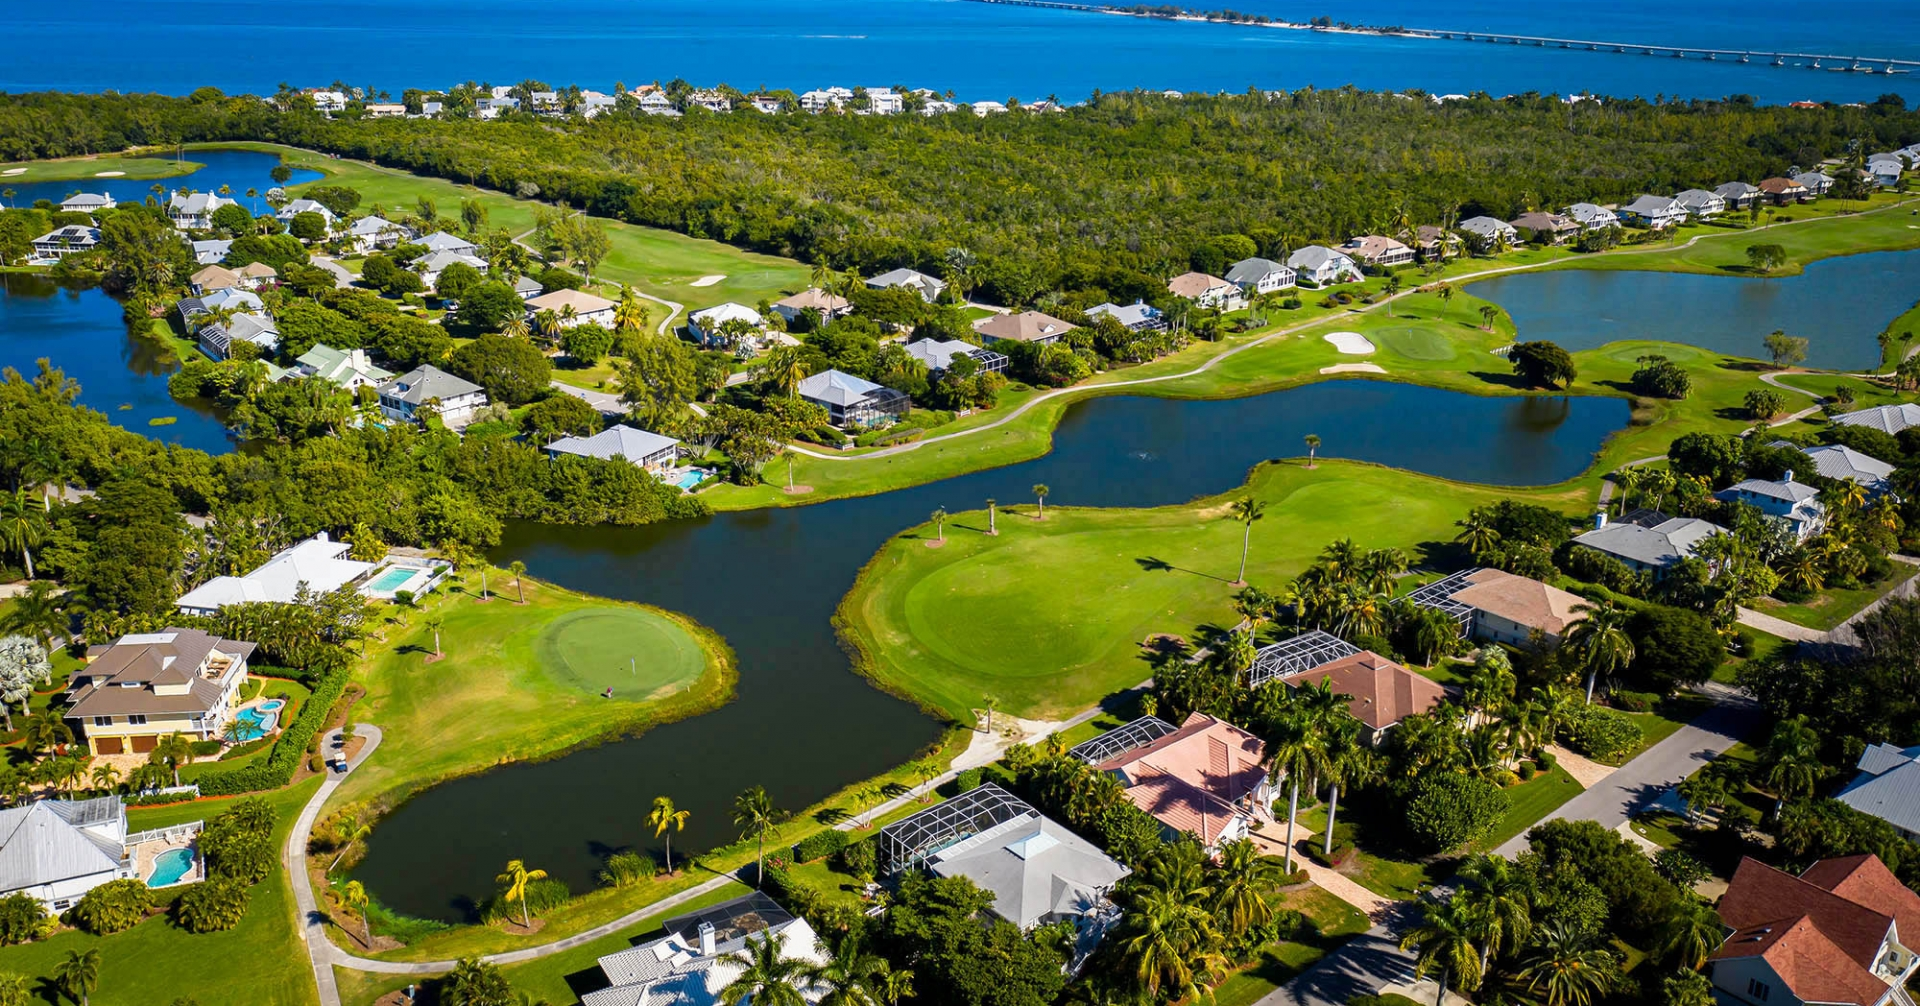 The Dunes of Sanibel Golf Course